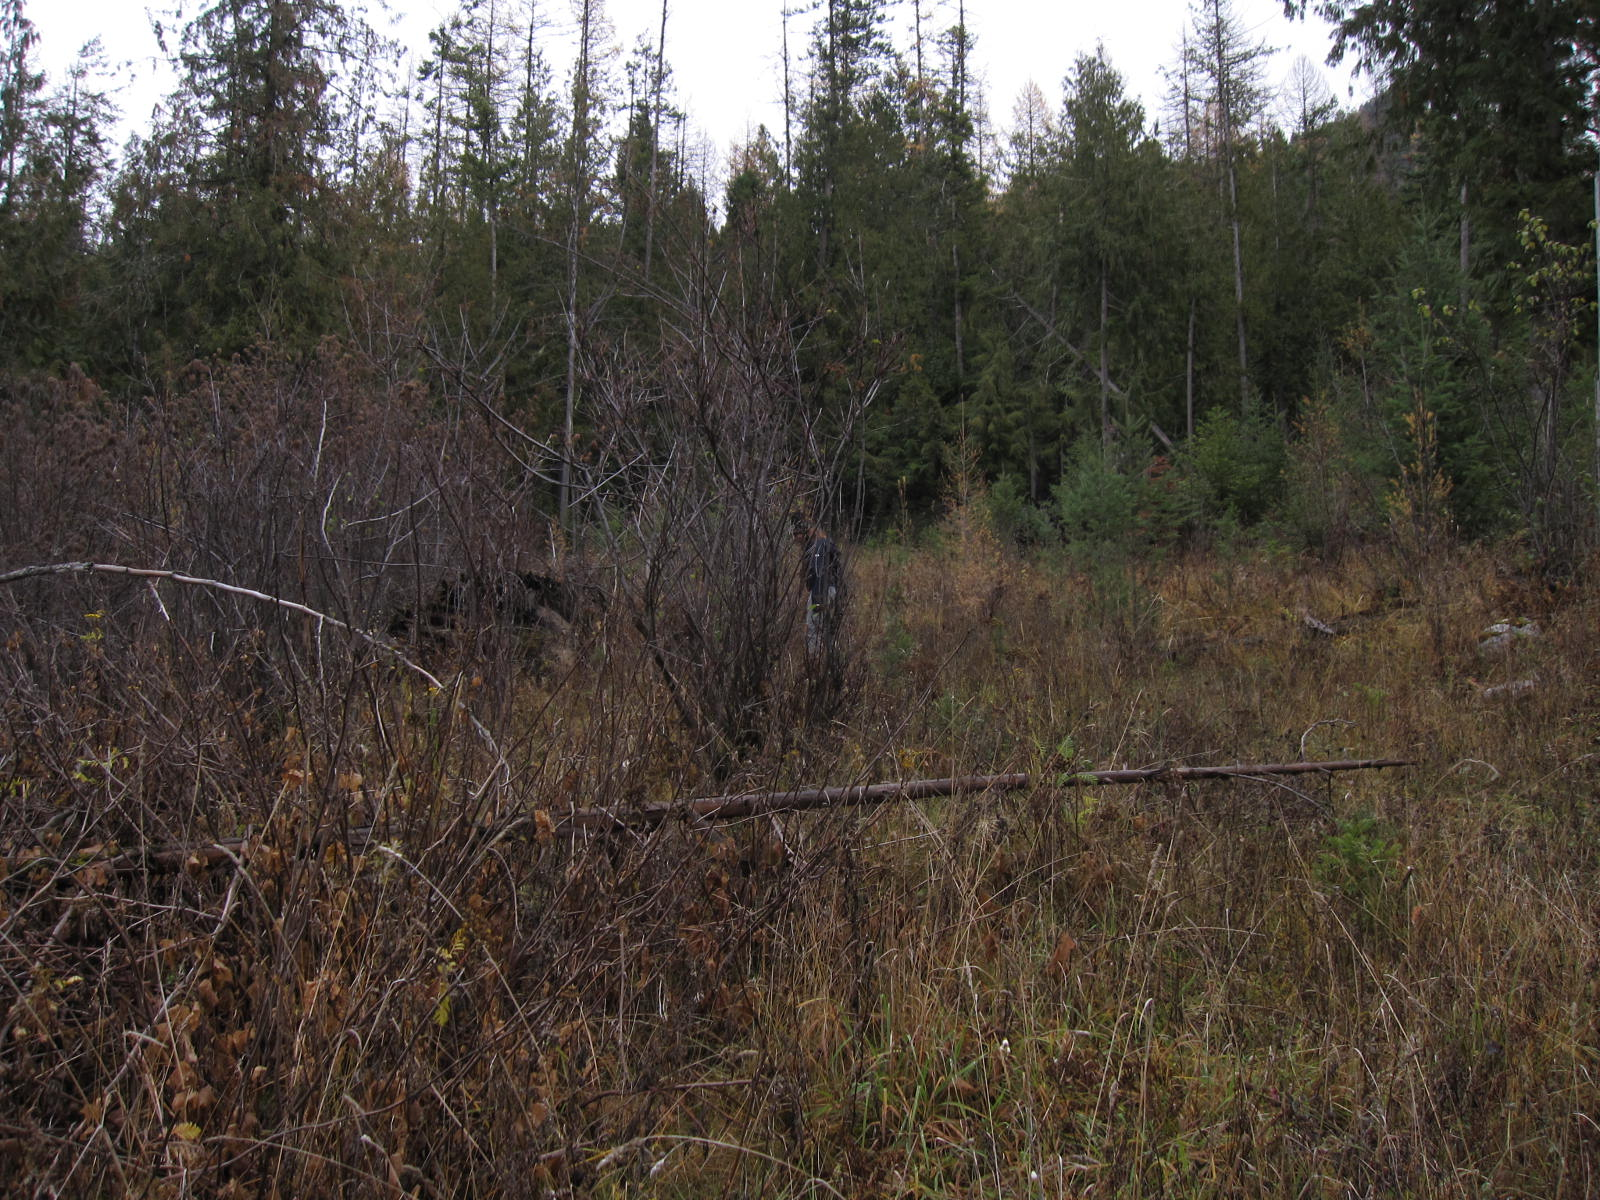 Terreno per Vendita alle ore Three lots with views of Lake Pend Oreille B3 L15-17 Pend Oreille Ave Bayview, Idaho, 83803 Stati Uniti